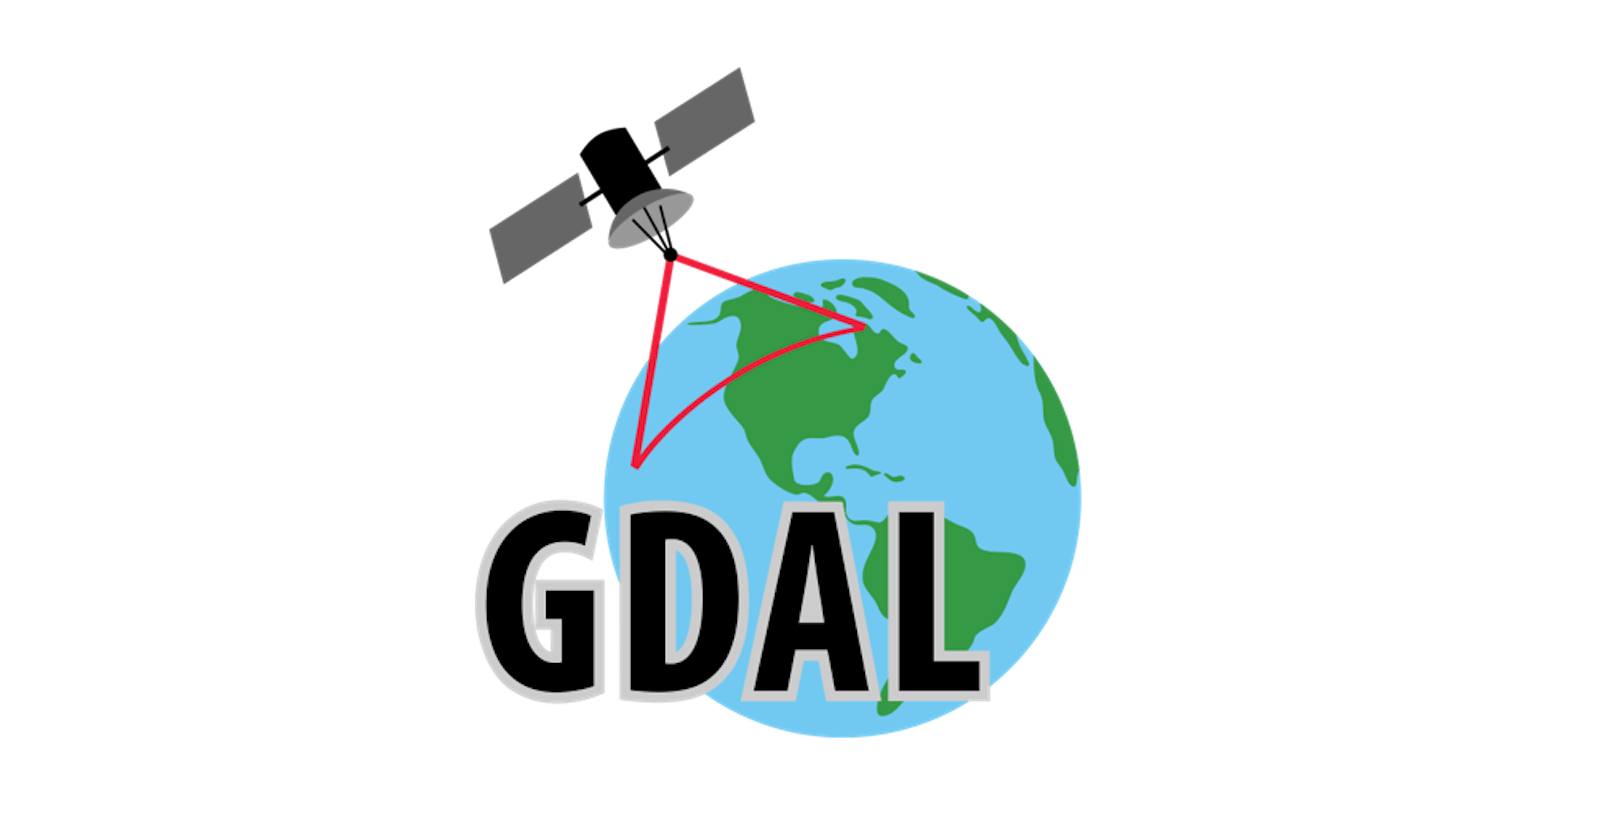 A Primer on GDAL - Geospatial Data Abstraction Library